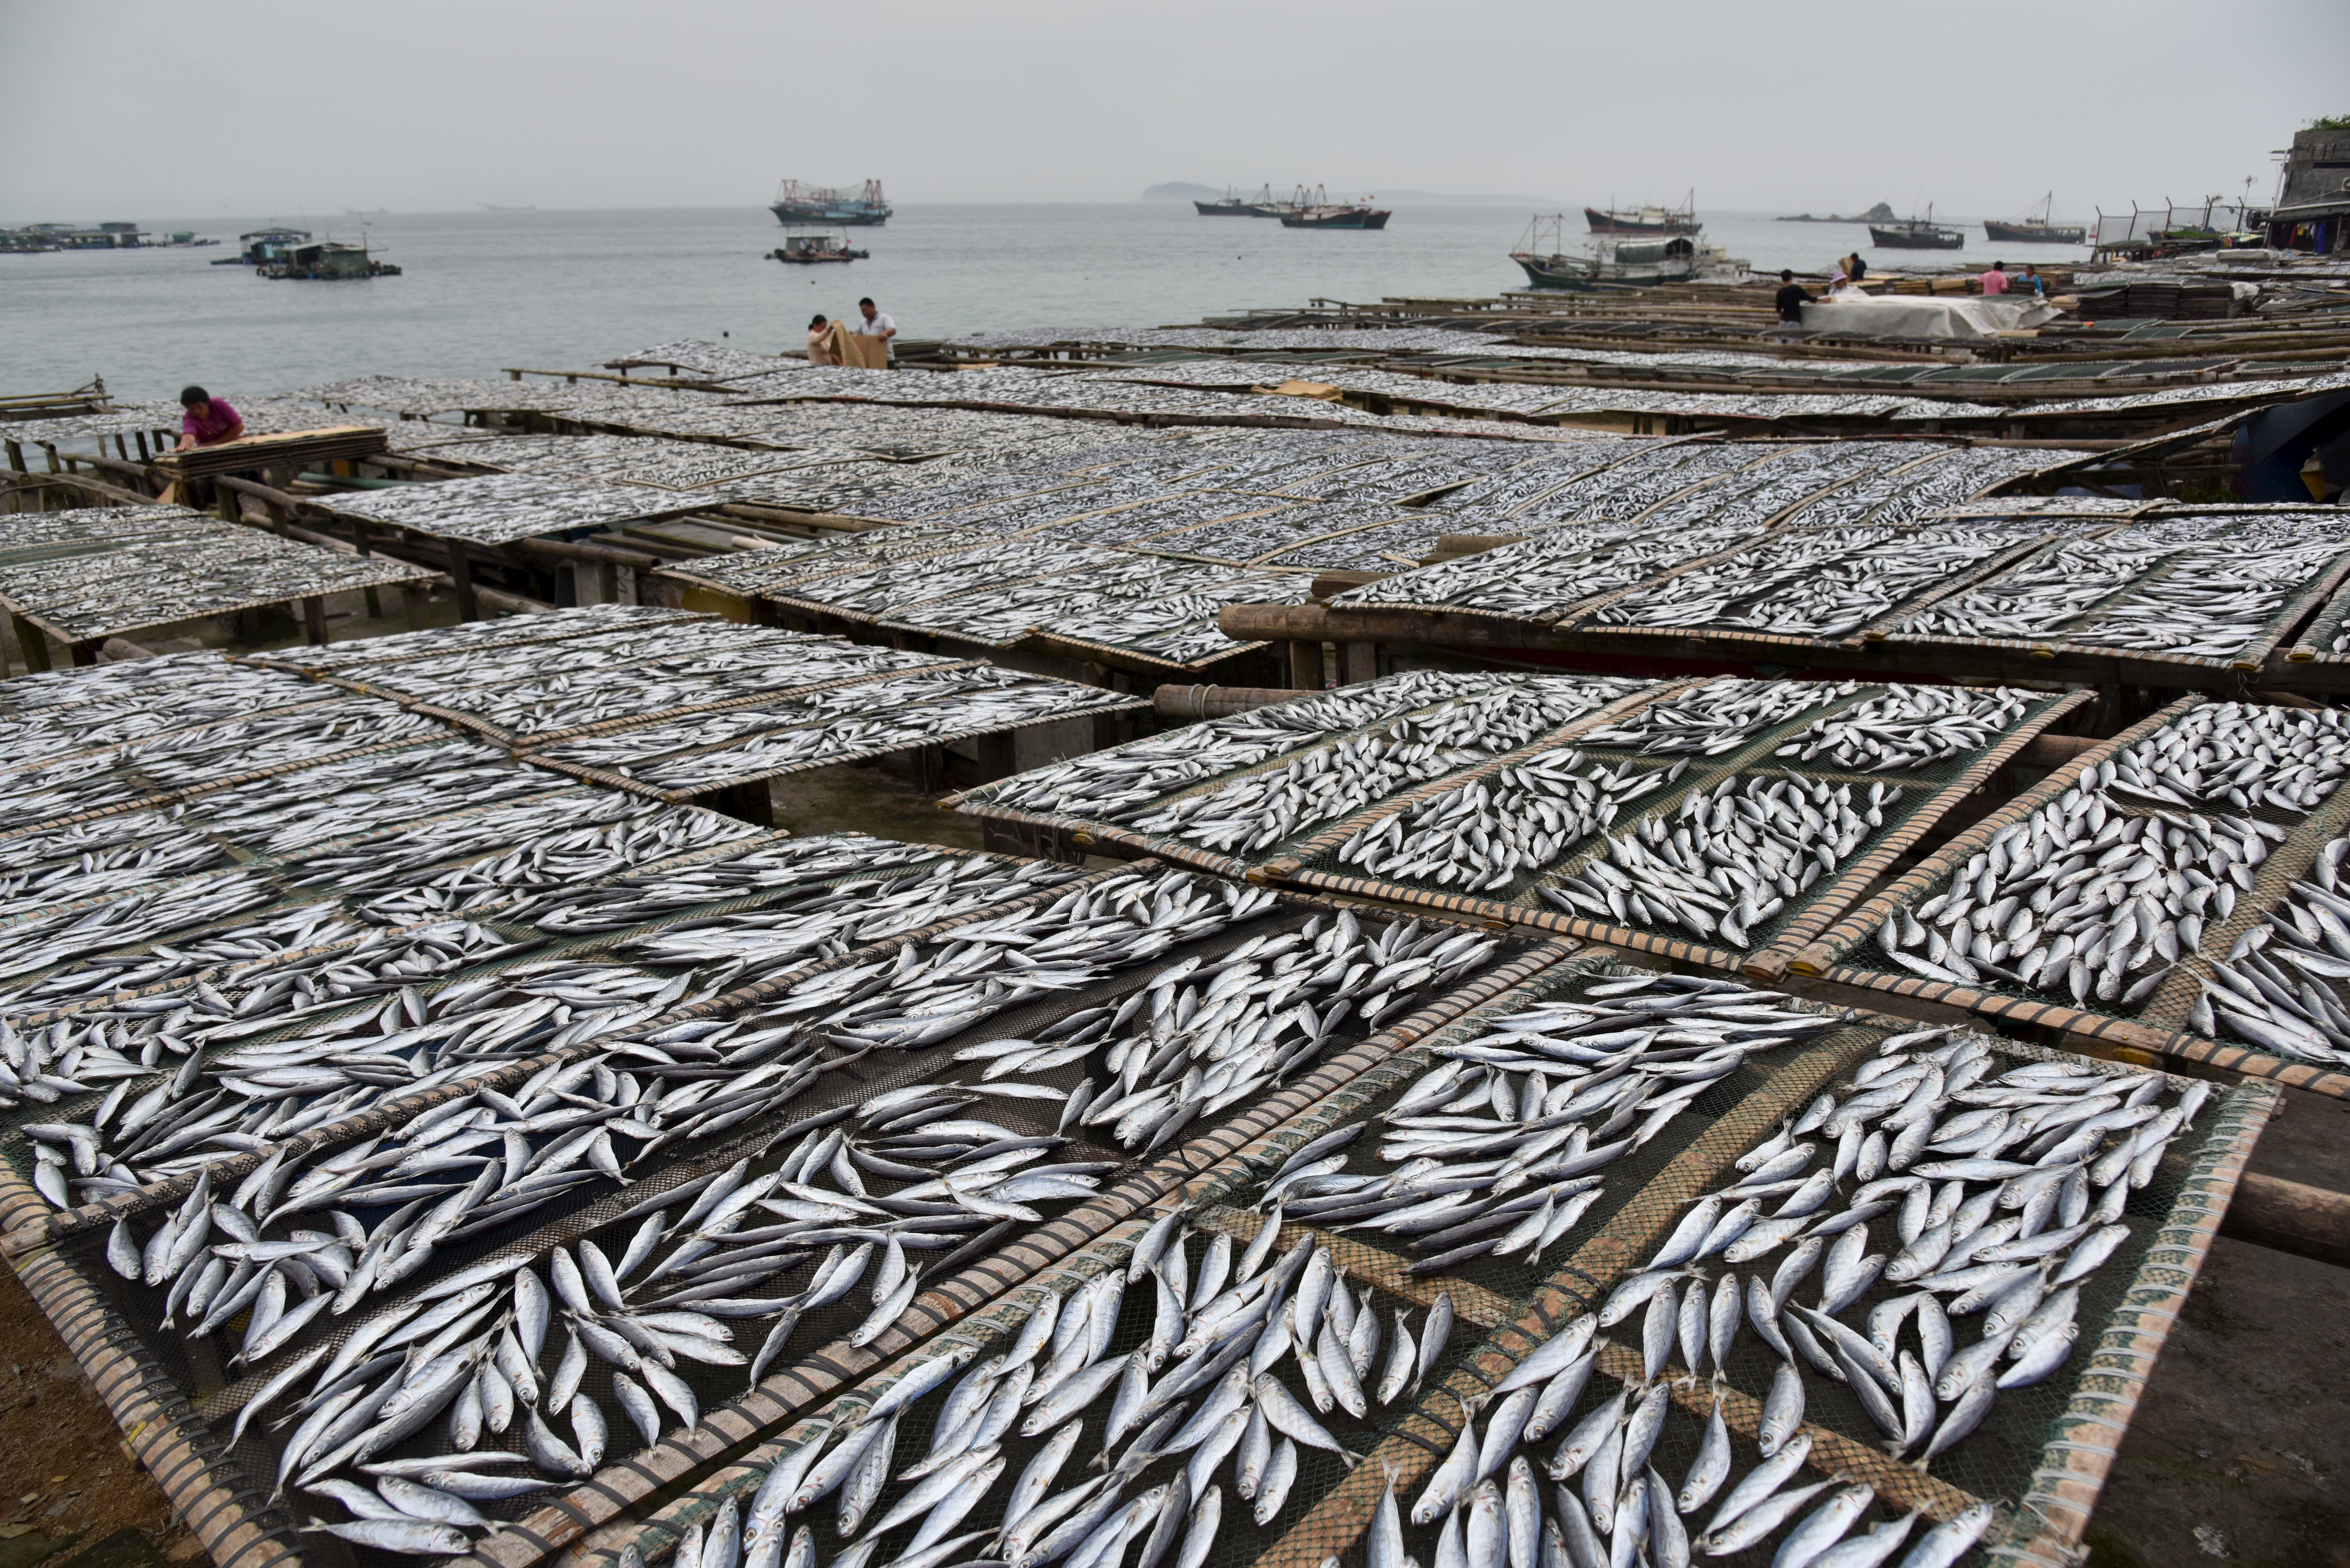 Fish are seen being dried at a shoreside in Shenzhen, Guangdong Province, China, April 21, 2016. REUTERS/Stringer ATTENTION EDITORS - THIS PICTURE WAS PROVIDED BY A THIRD PARTY. THIS PICTURE IS DISTRIBUTED EXACTLY AS RECEIVED BY REUTERS, AS A SERVICE TO CLIENTS. CHINA OUT. NO COMMERCIAL OR EDITORIAL SALES IN CHINA. - GF10000391890